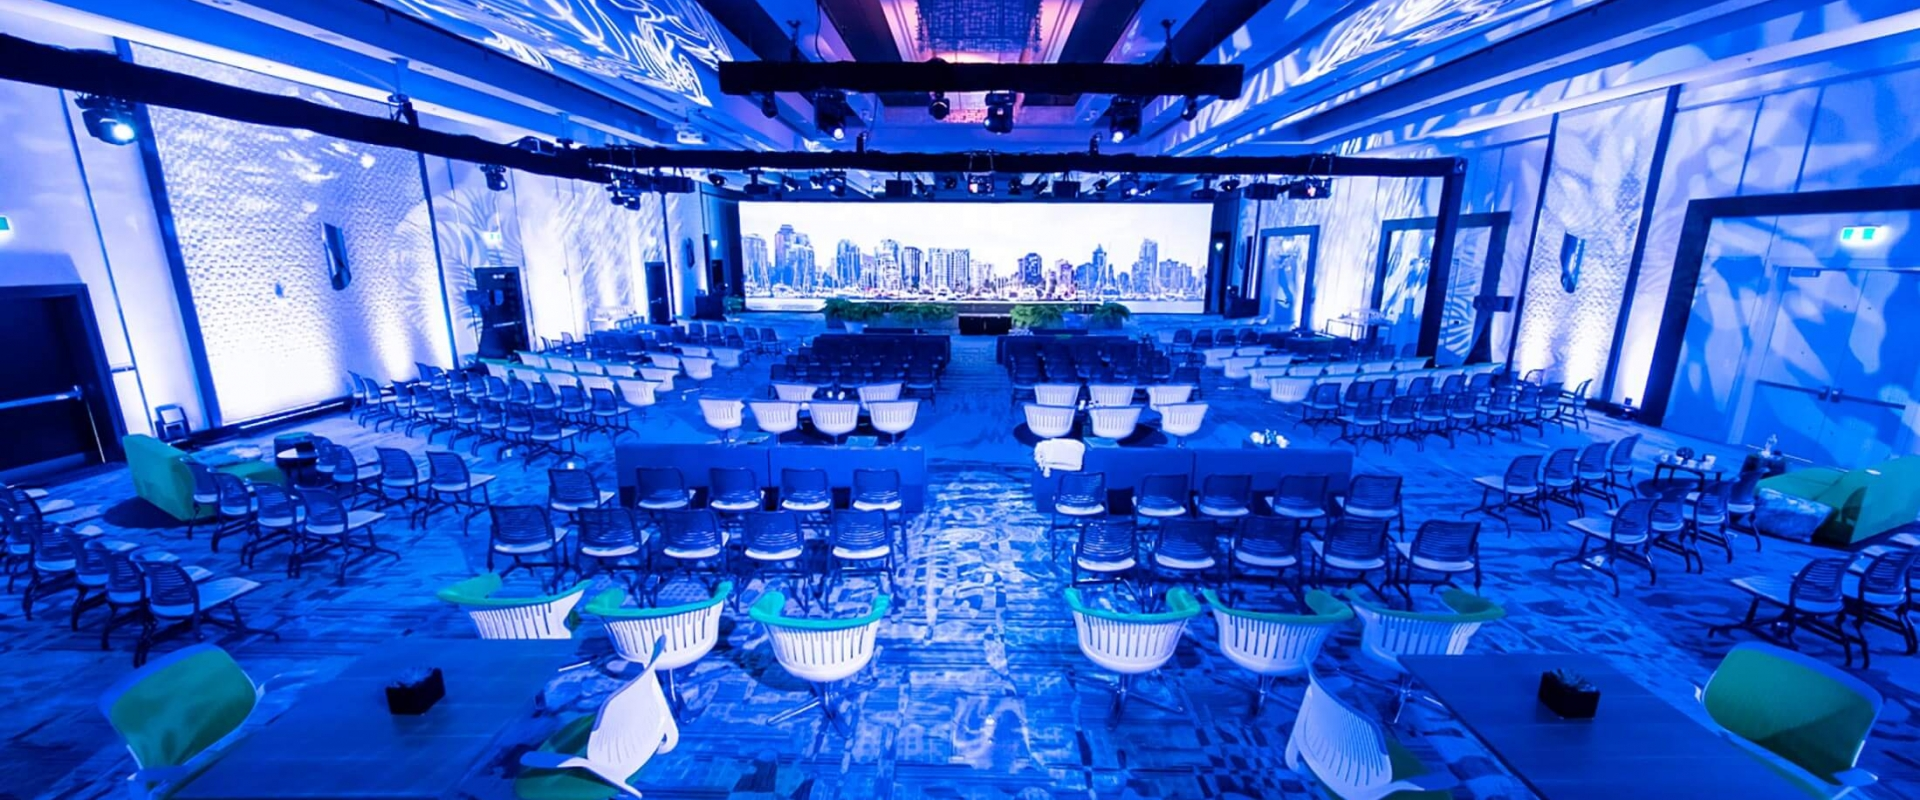 The grand ballroom at Parq Vancouver lined with chairs